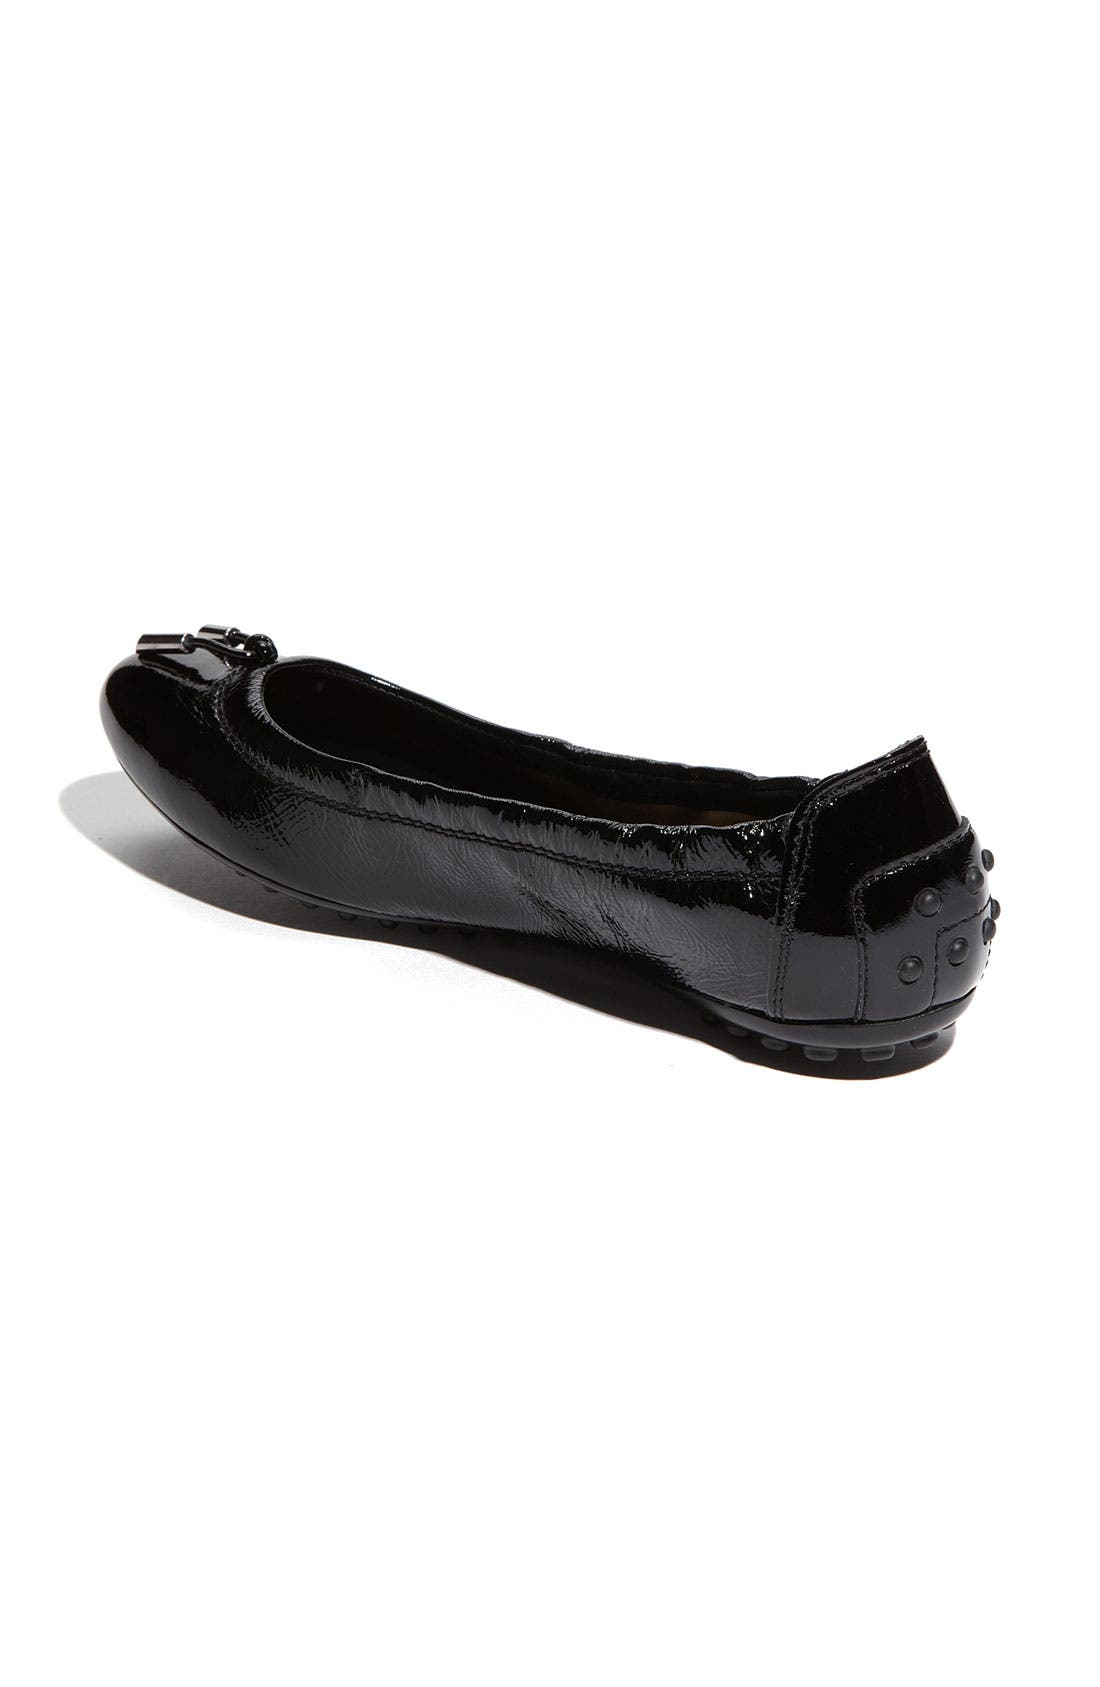 Alternate Image 2  - Tod's Bow Trim Patent Leather Flat